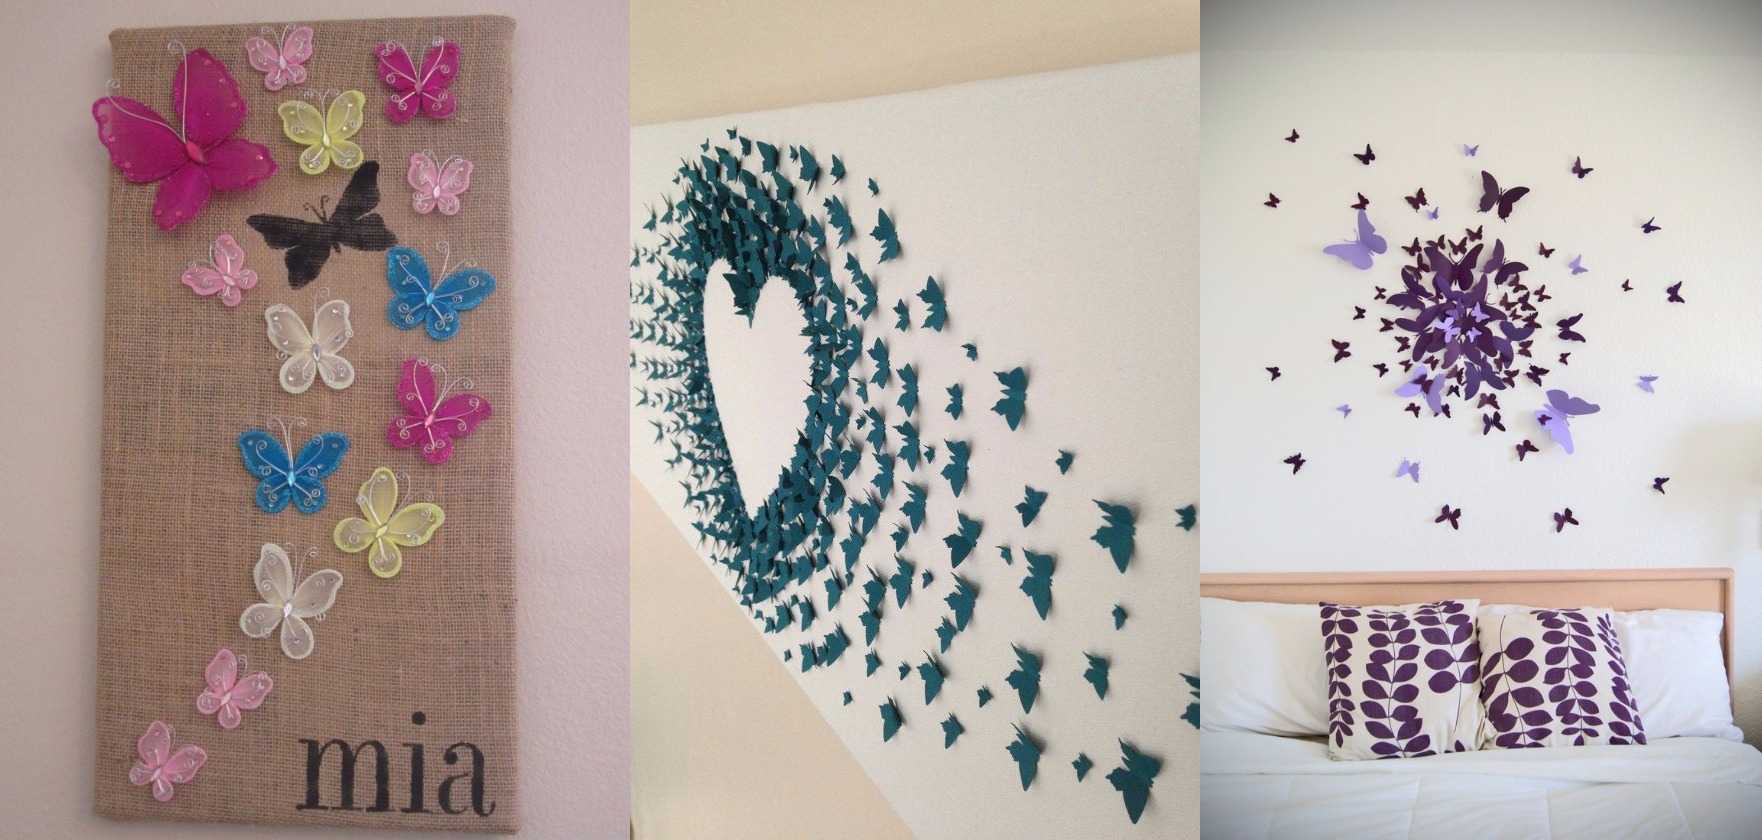 10 diy butterfly wall decor ideas with directions a diy for Home design ideas handmade